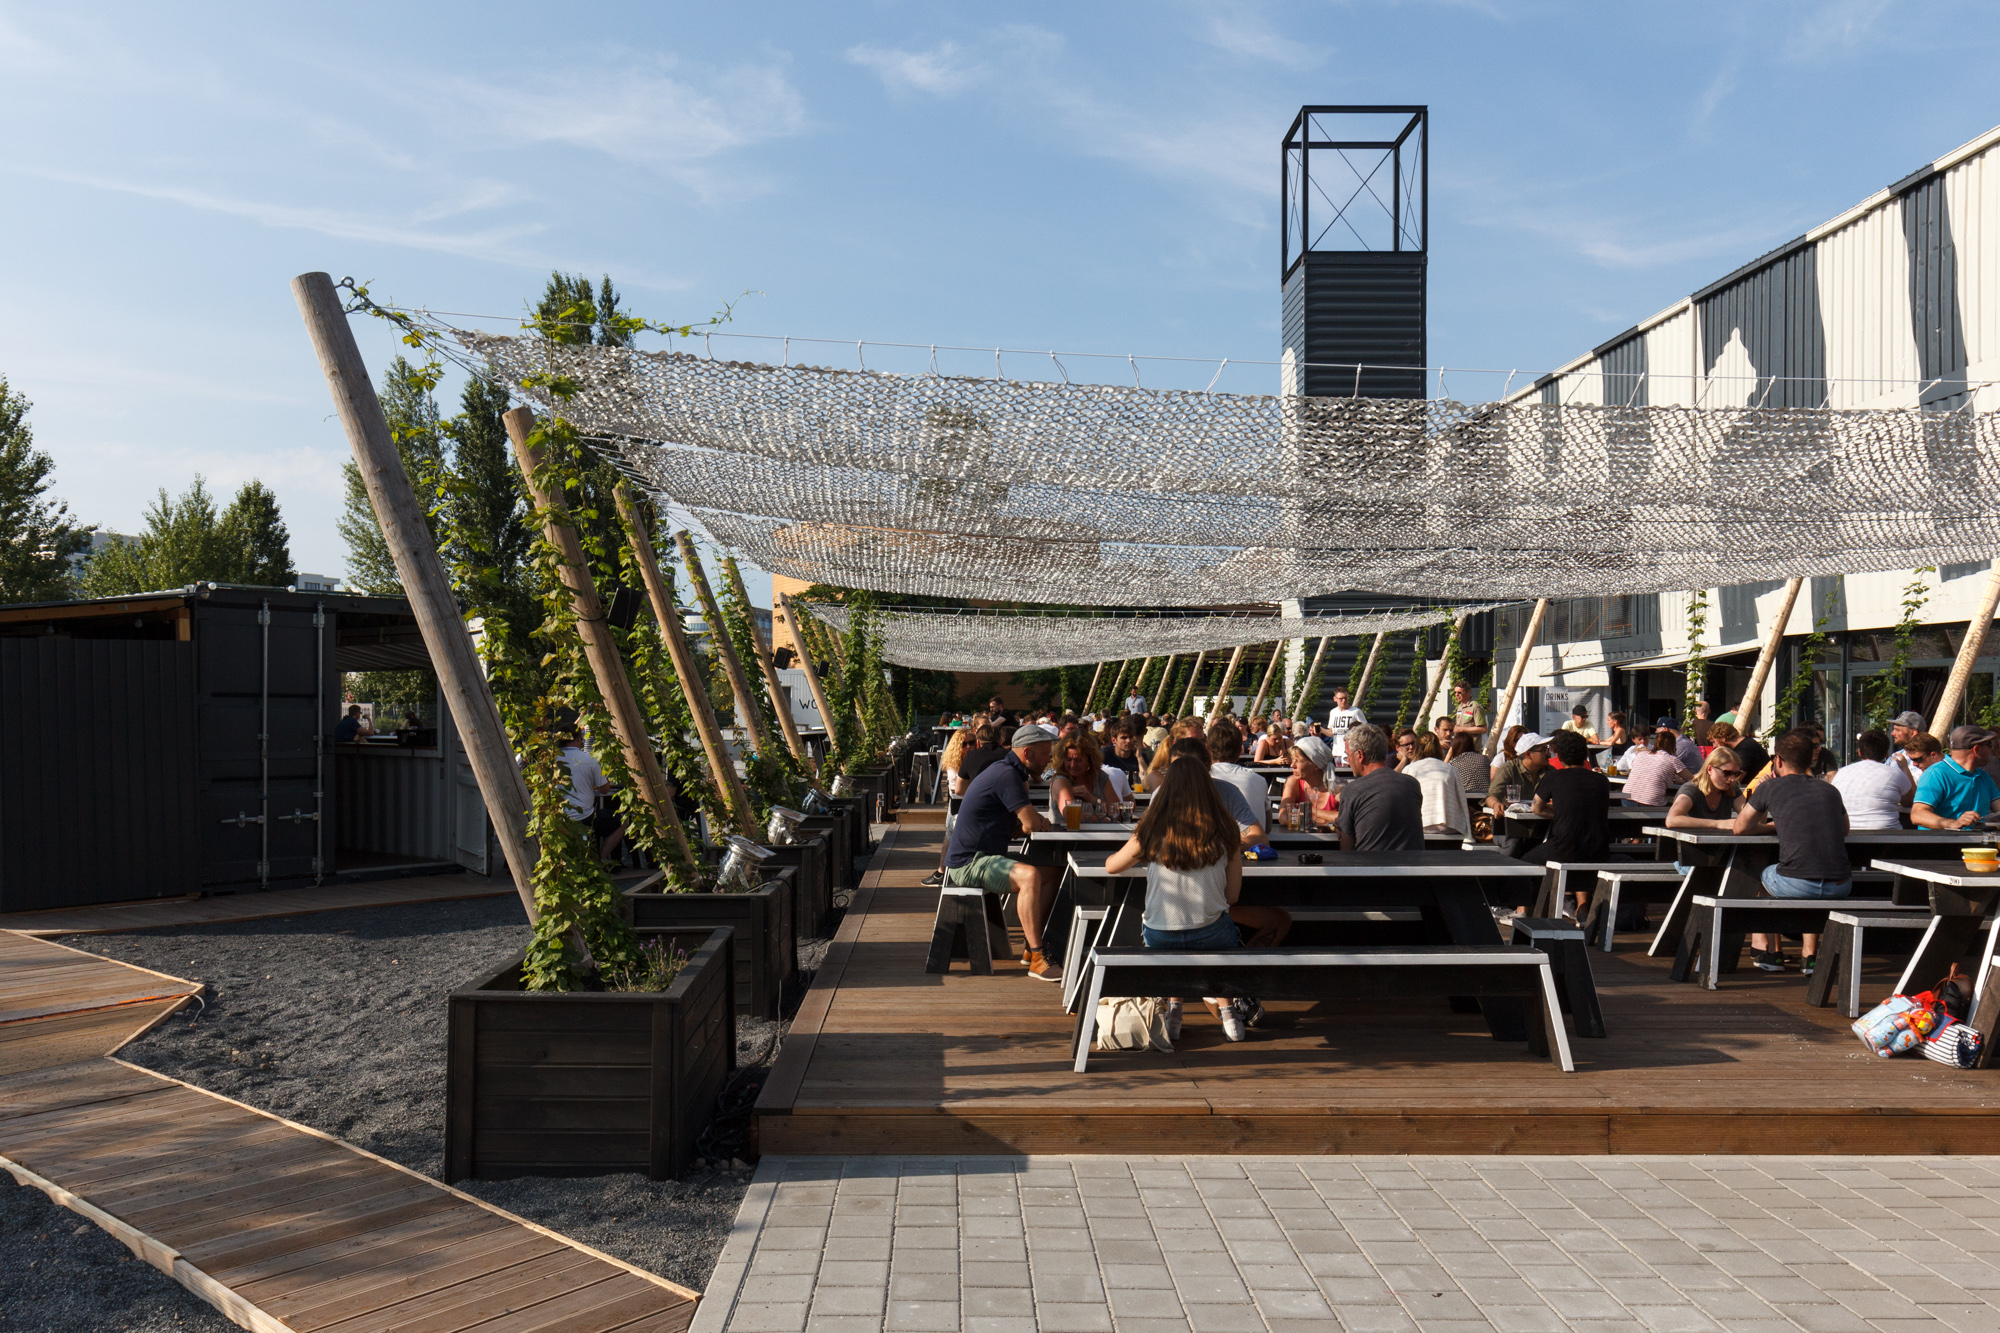 The beer garden at BRLO Brwhouse - a craft beer brewery, bar, restaurant and beer garden and the edge of Park am Gleisdreieck in Berlin